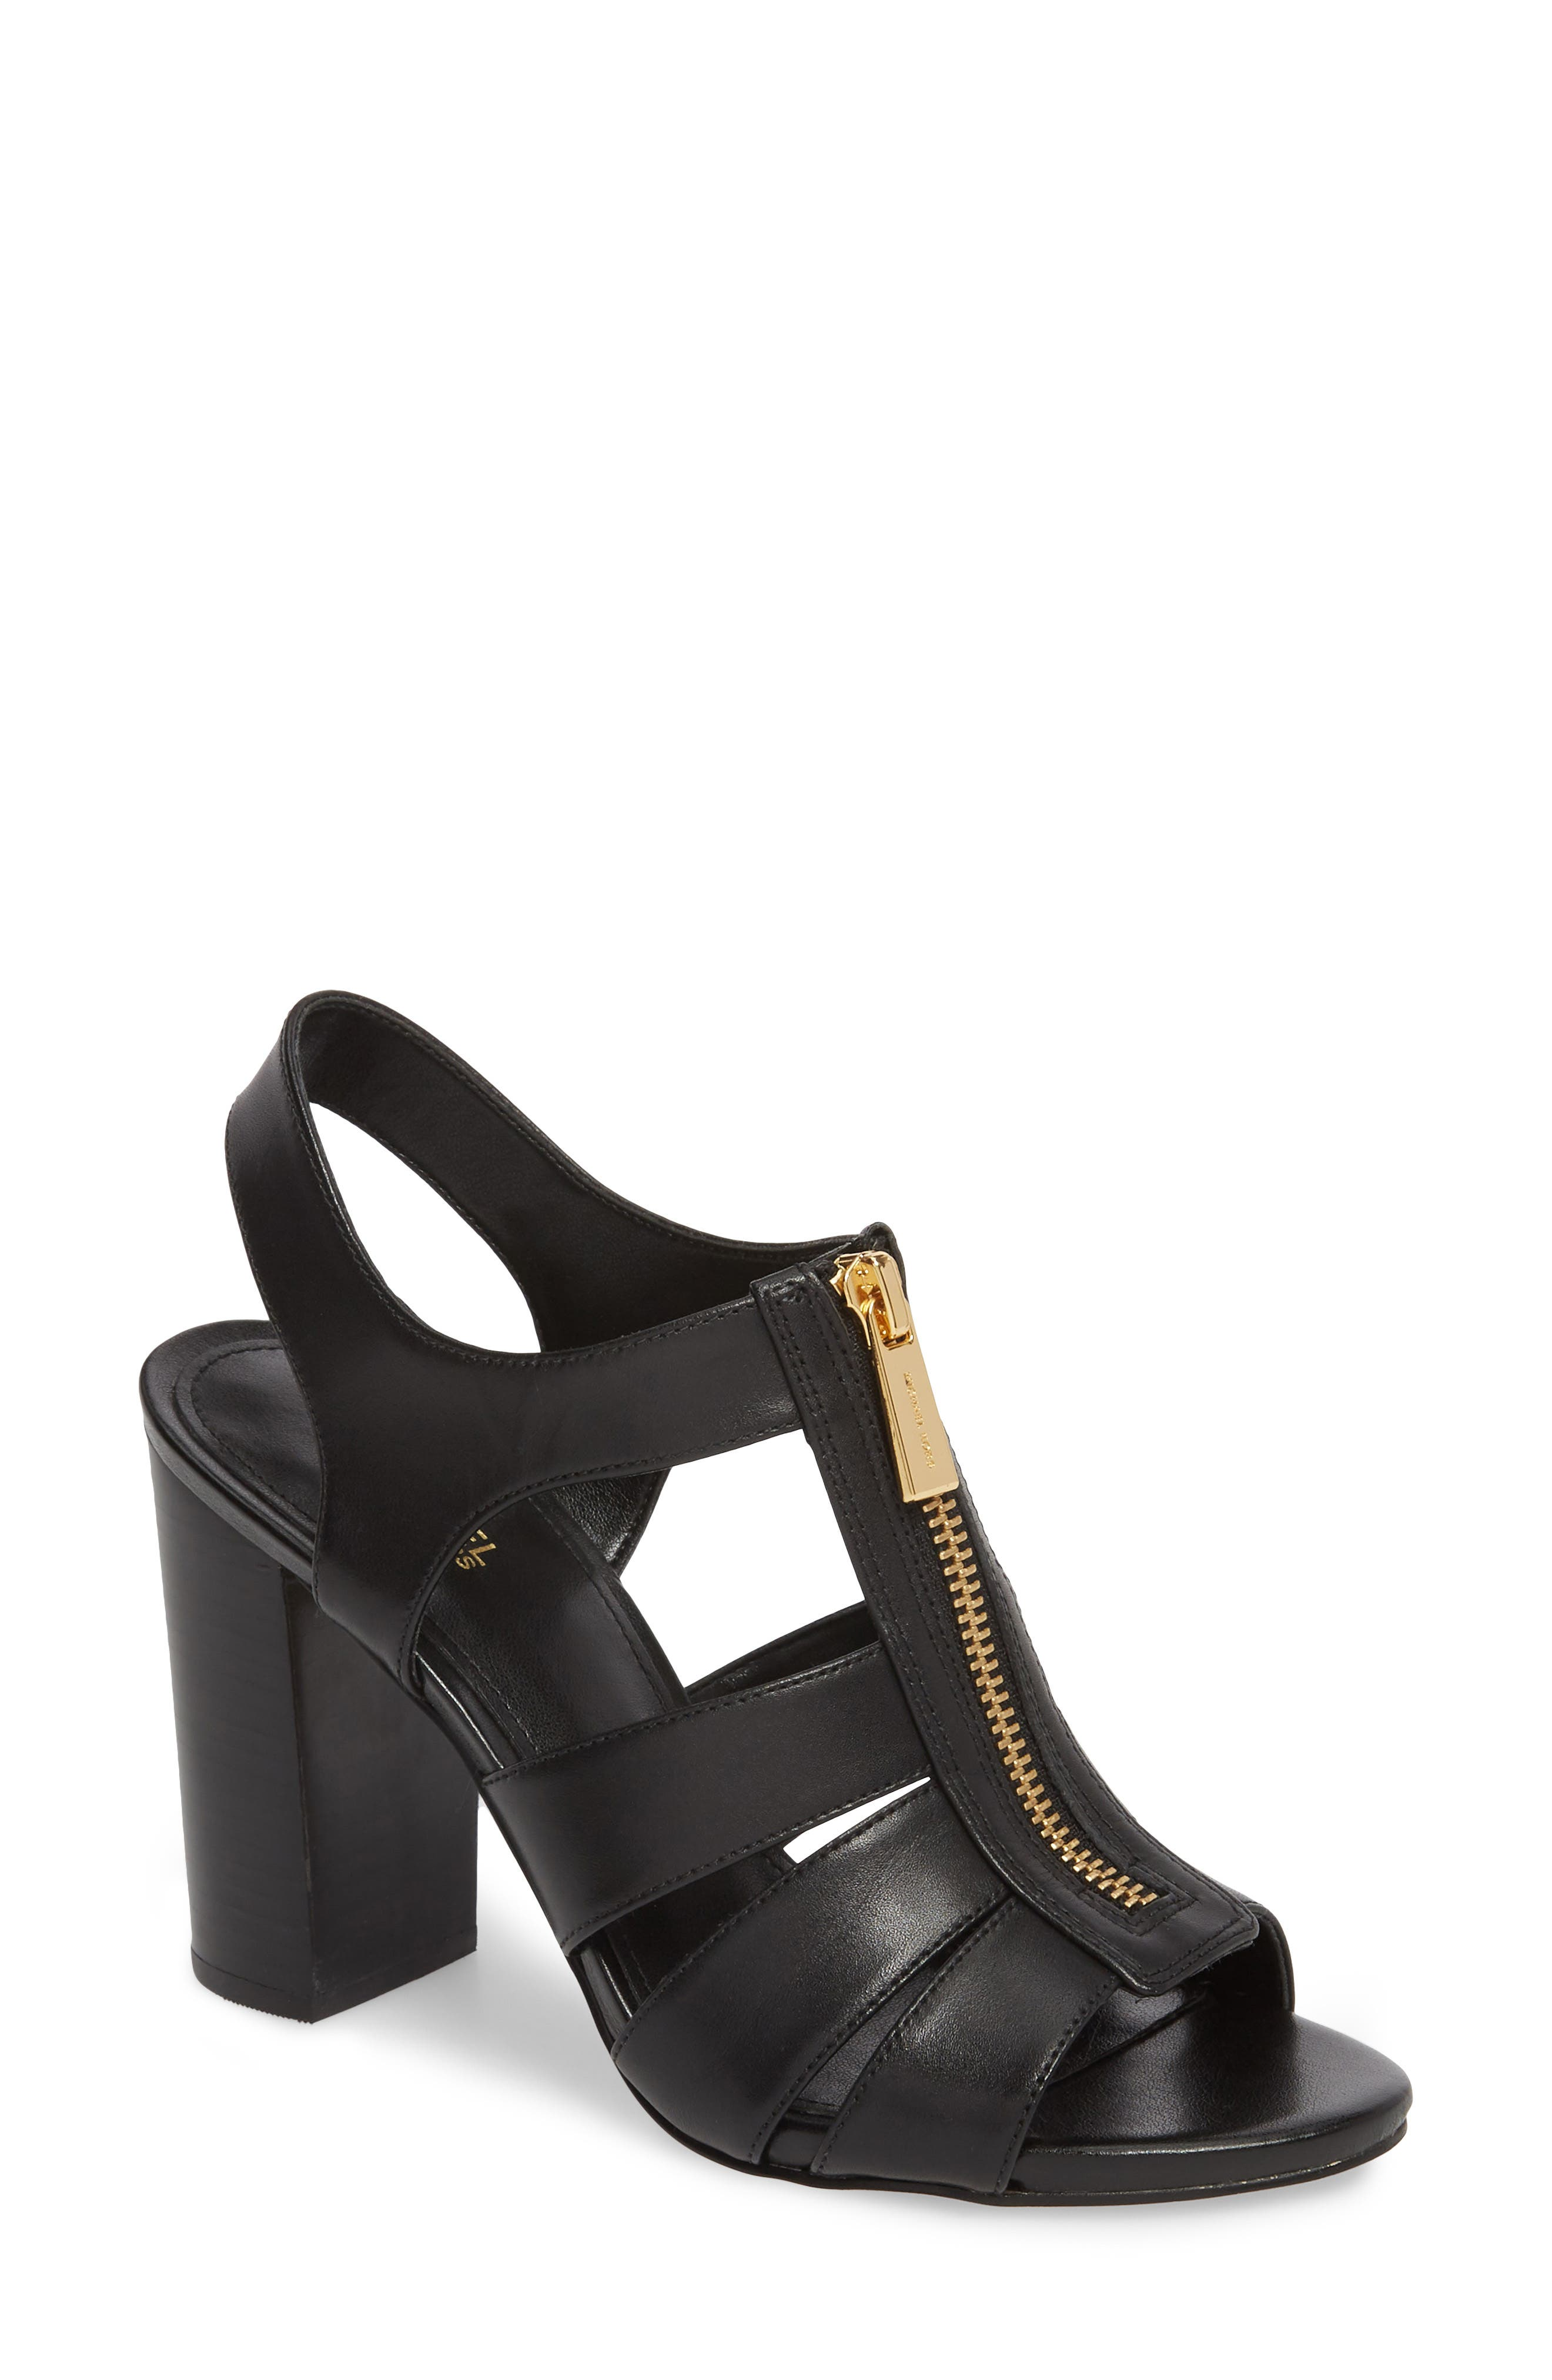 Damita Sandal,                             Main thumbnail 1, color,                             Black